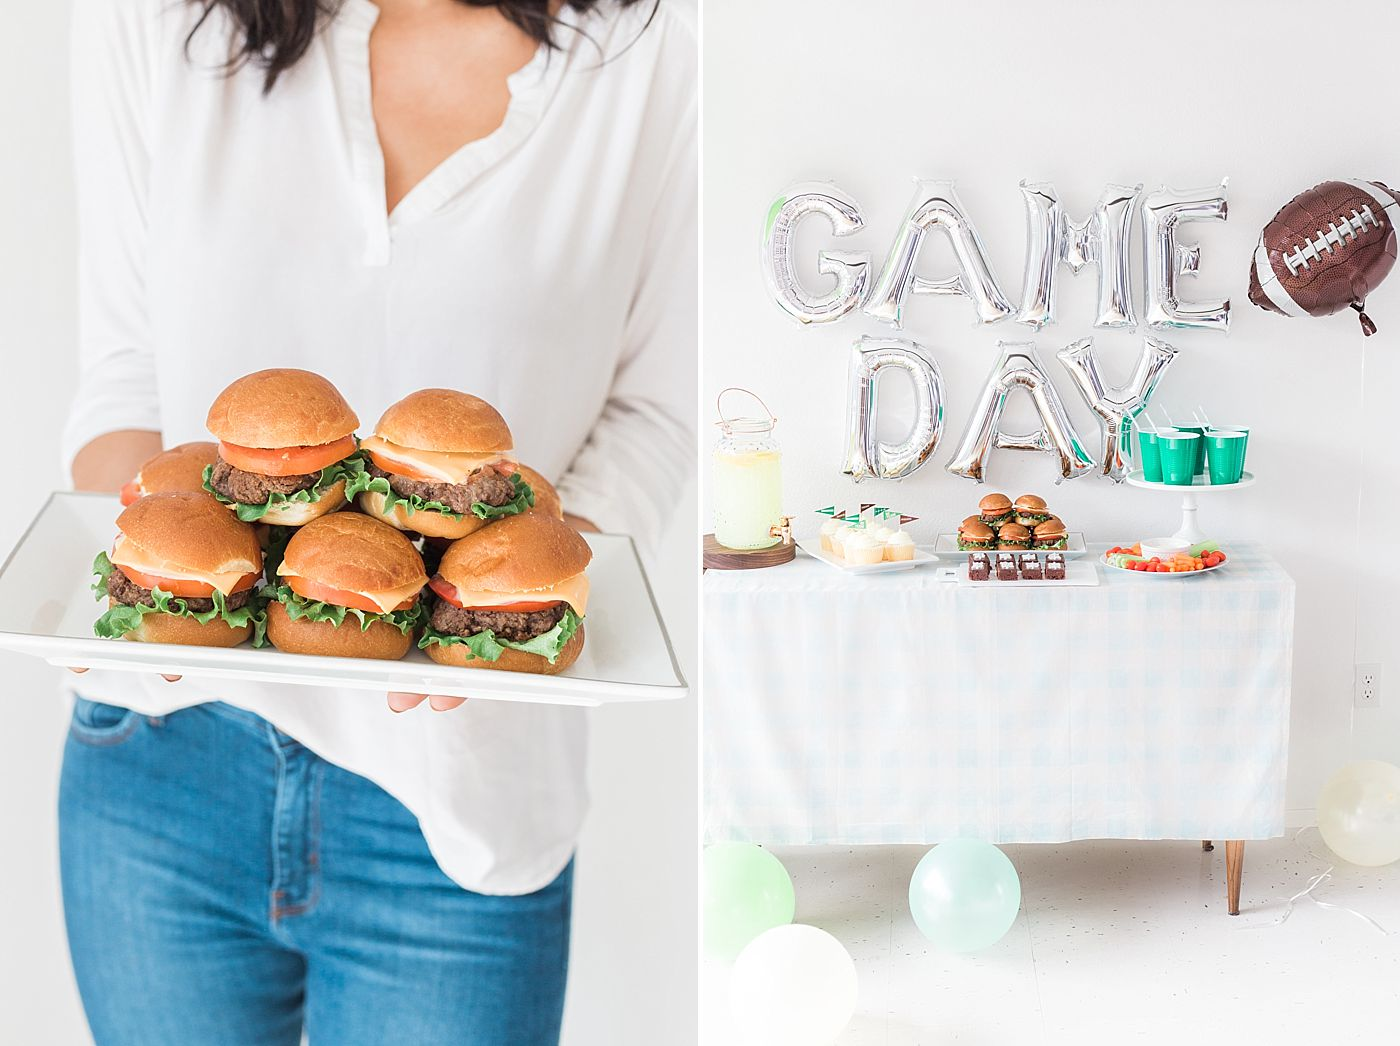 Game Day Fun - Best Friends for Frosting and UBER - Ashley Baumgartner - Sacramento Wedding Photography and Sacramento Wedding Photographer - Football Fun_0011.jpg